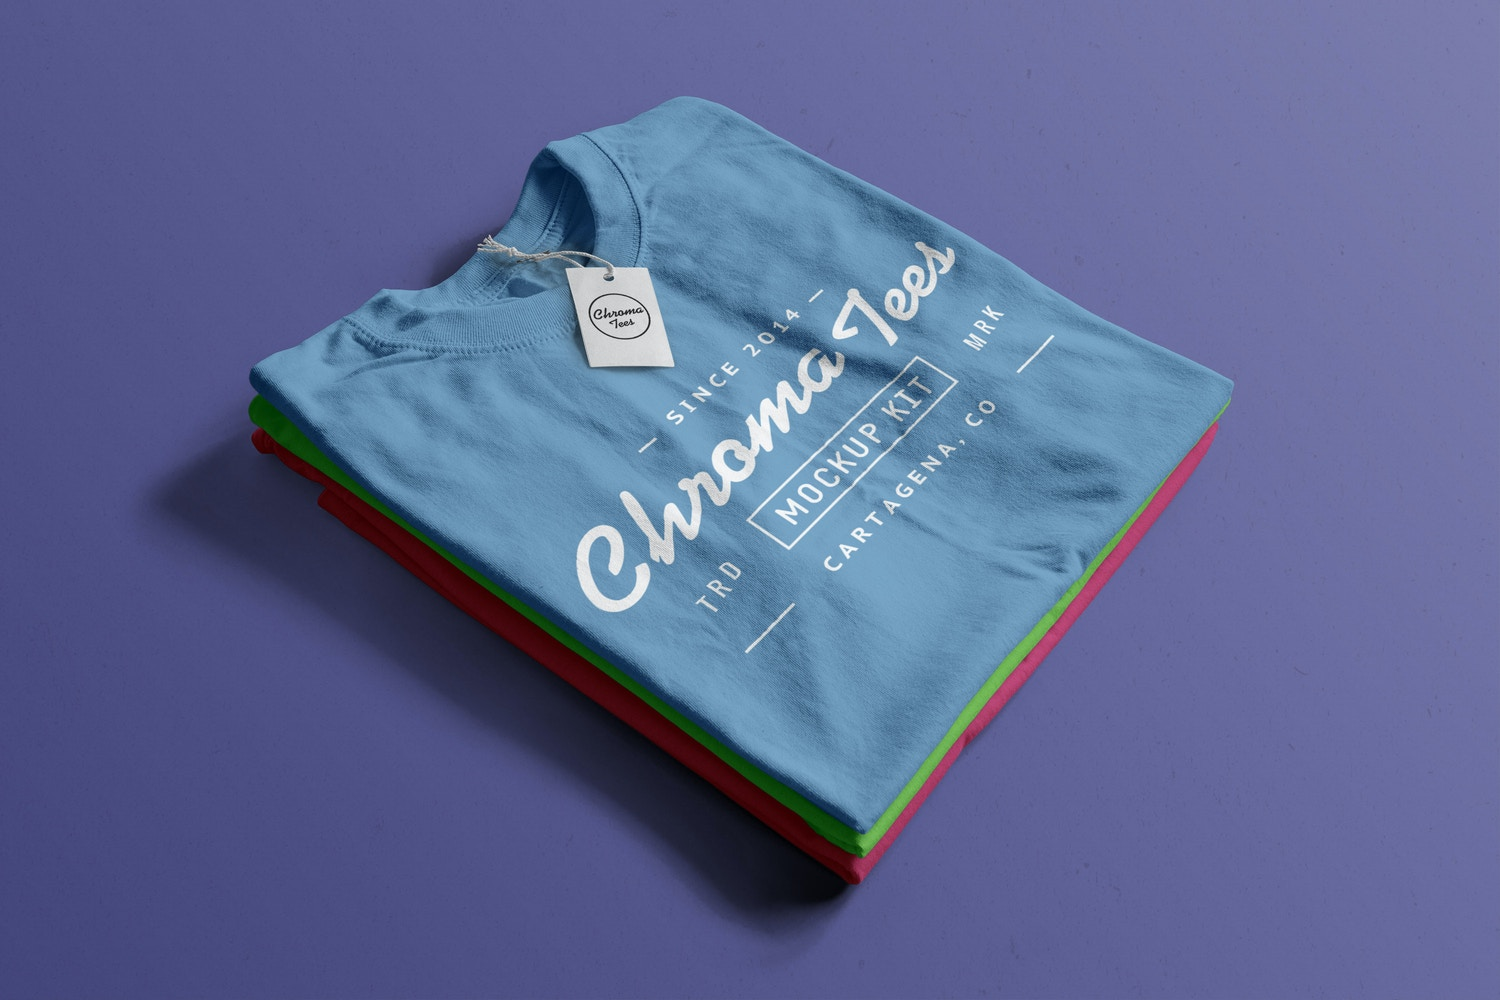 Stack of Folded T-Shirts Mockup 04 by Antonio Padilla on Original Mockups